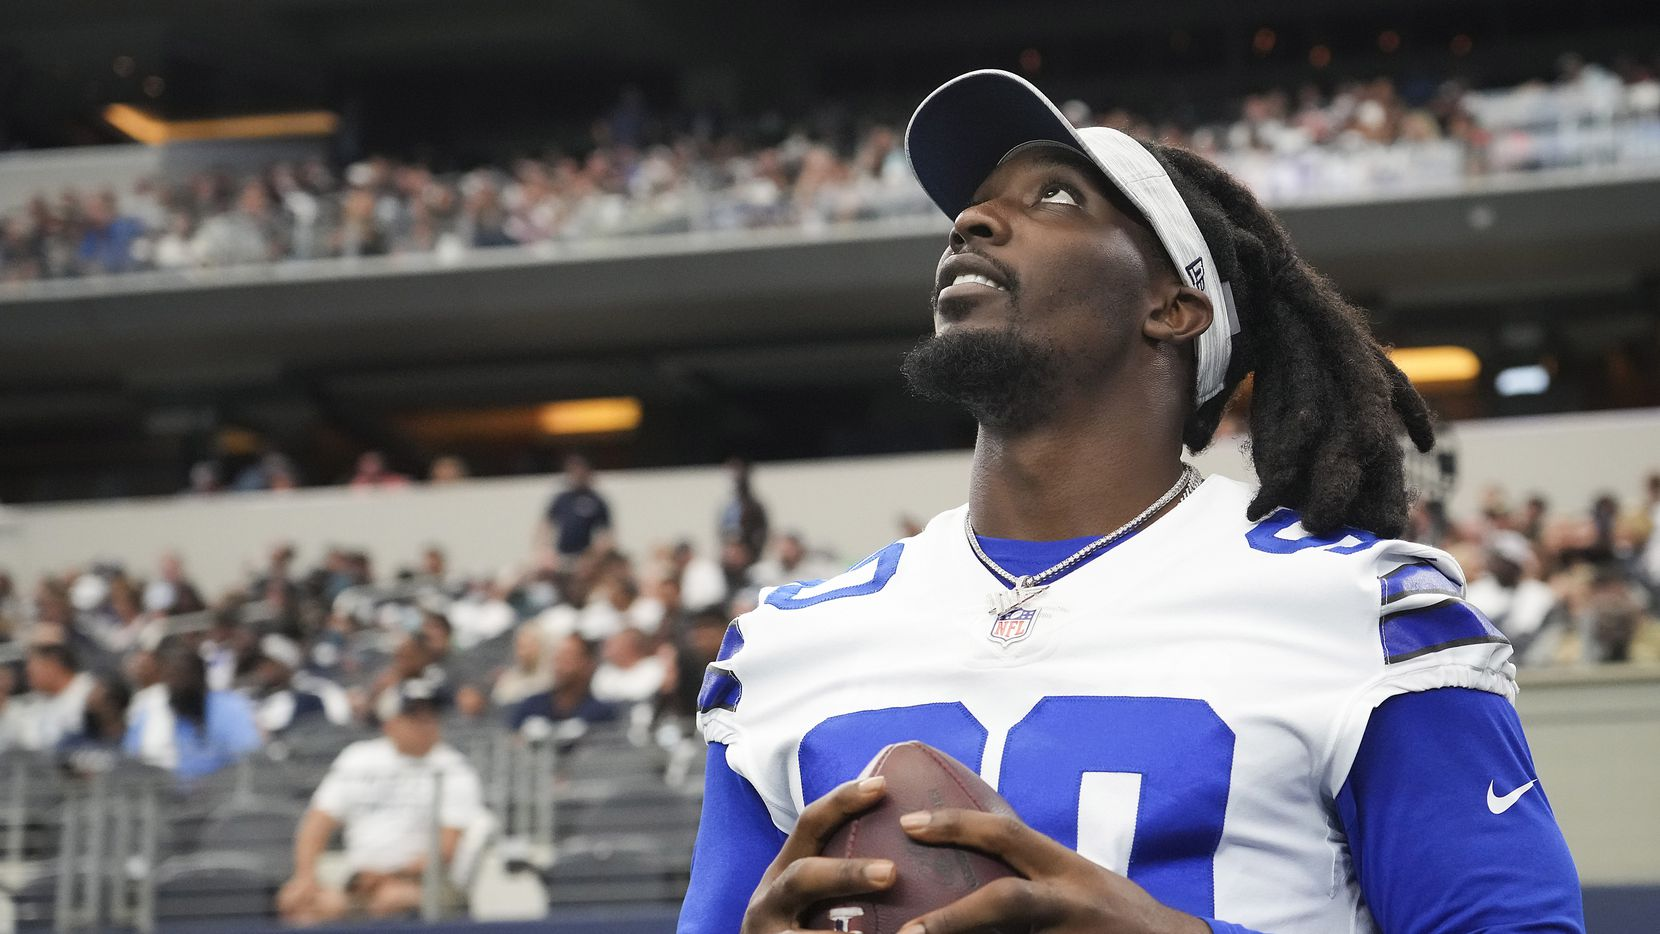 Dallas Cowboys defensive end DeMarcus Lawrence watches from the sidelines during the second half of a preseason NFL football game against the Jacksonville Jaguars at AT&T Stadium on Sunday, Aug. 29, 2021, in Arlington.